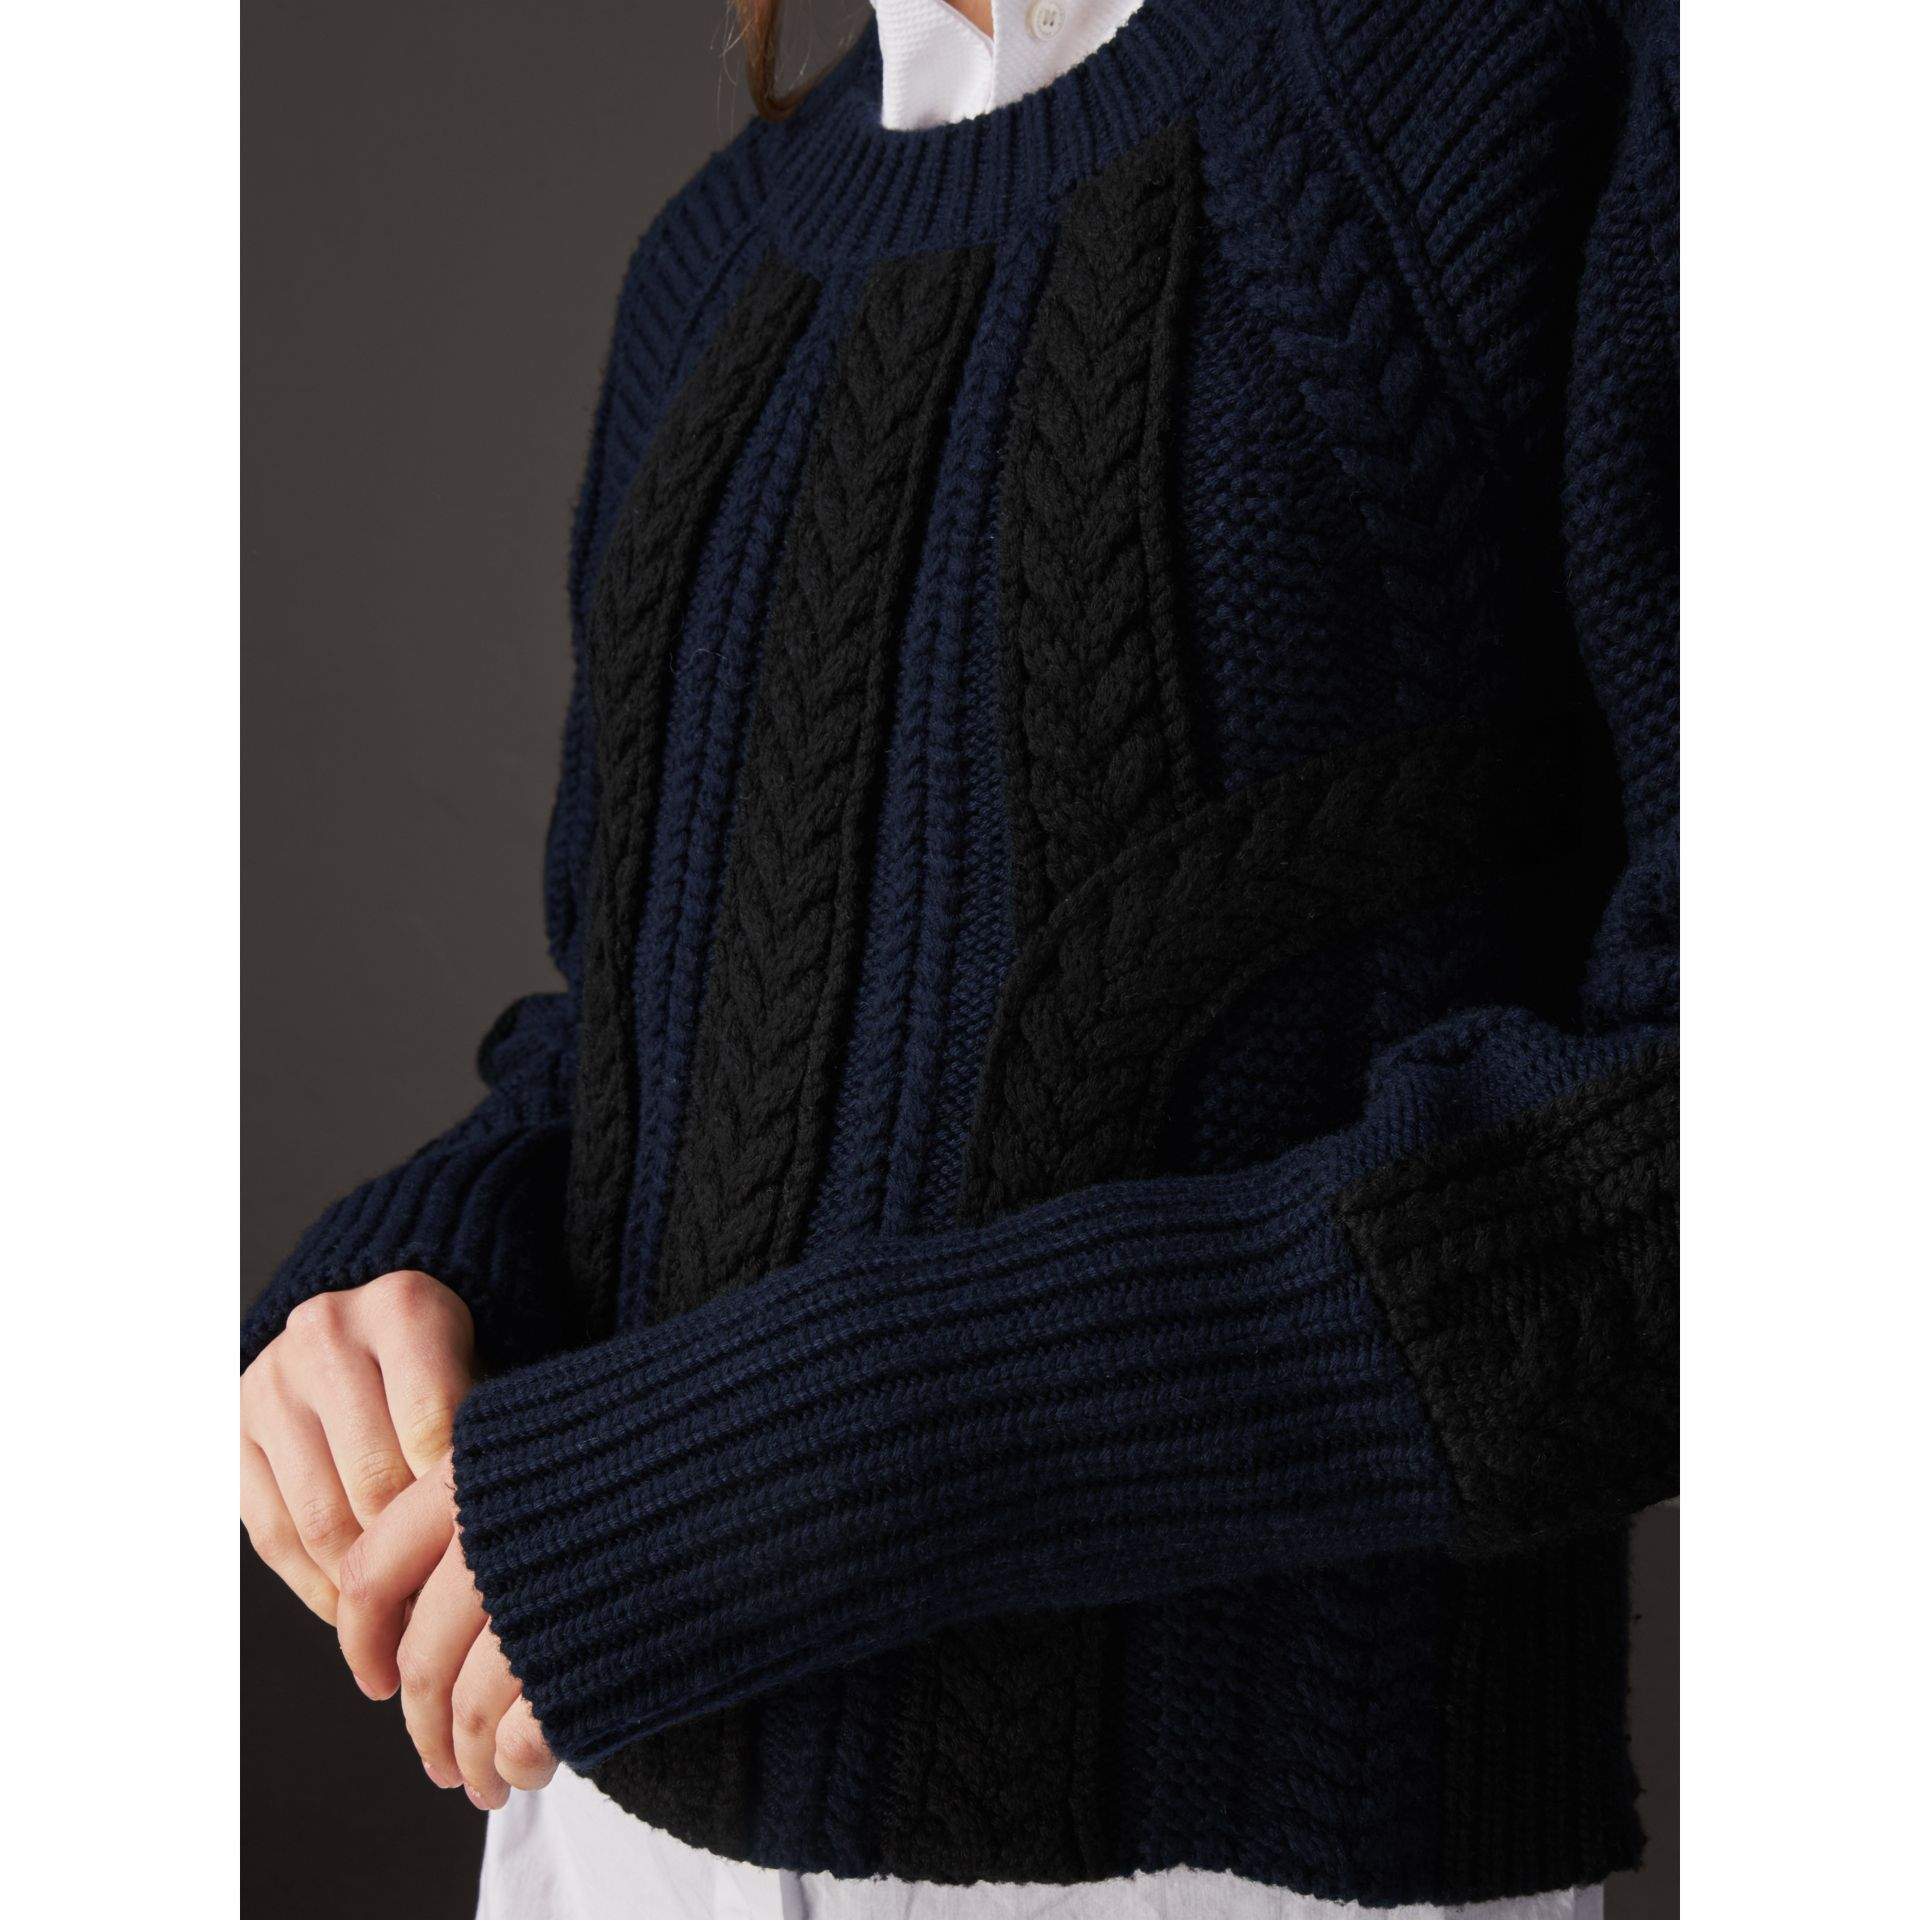 Two-tone Cable Knit Wool Cashmere Sweater in Navy - Women | Burberry United States - gallery image 2